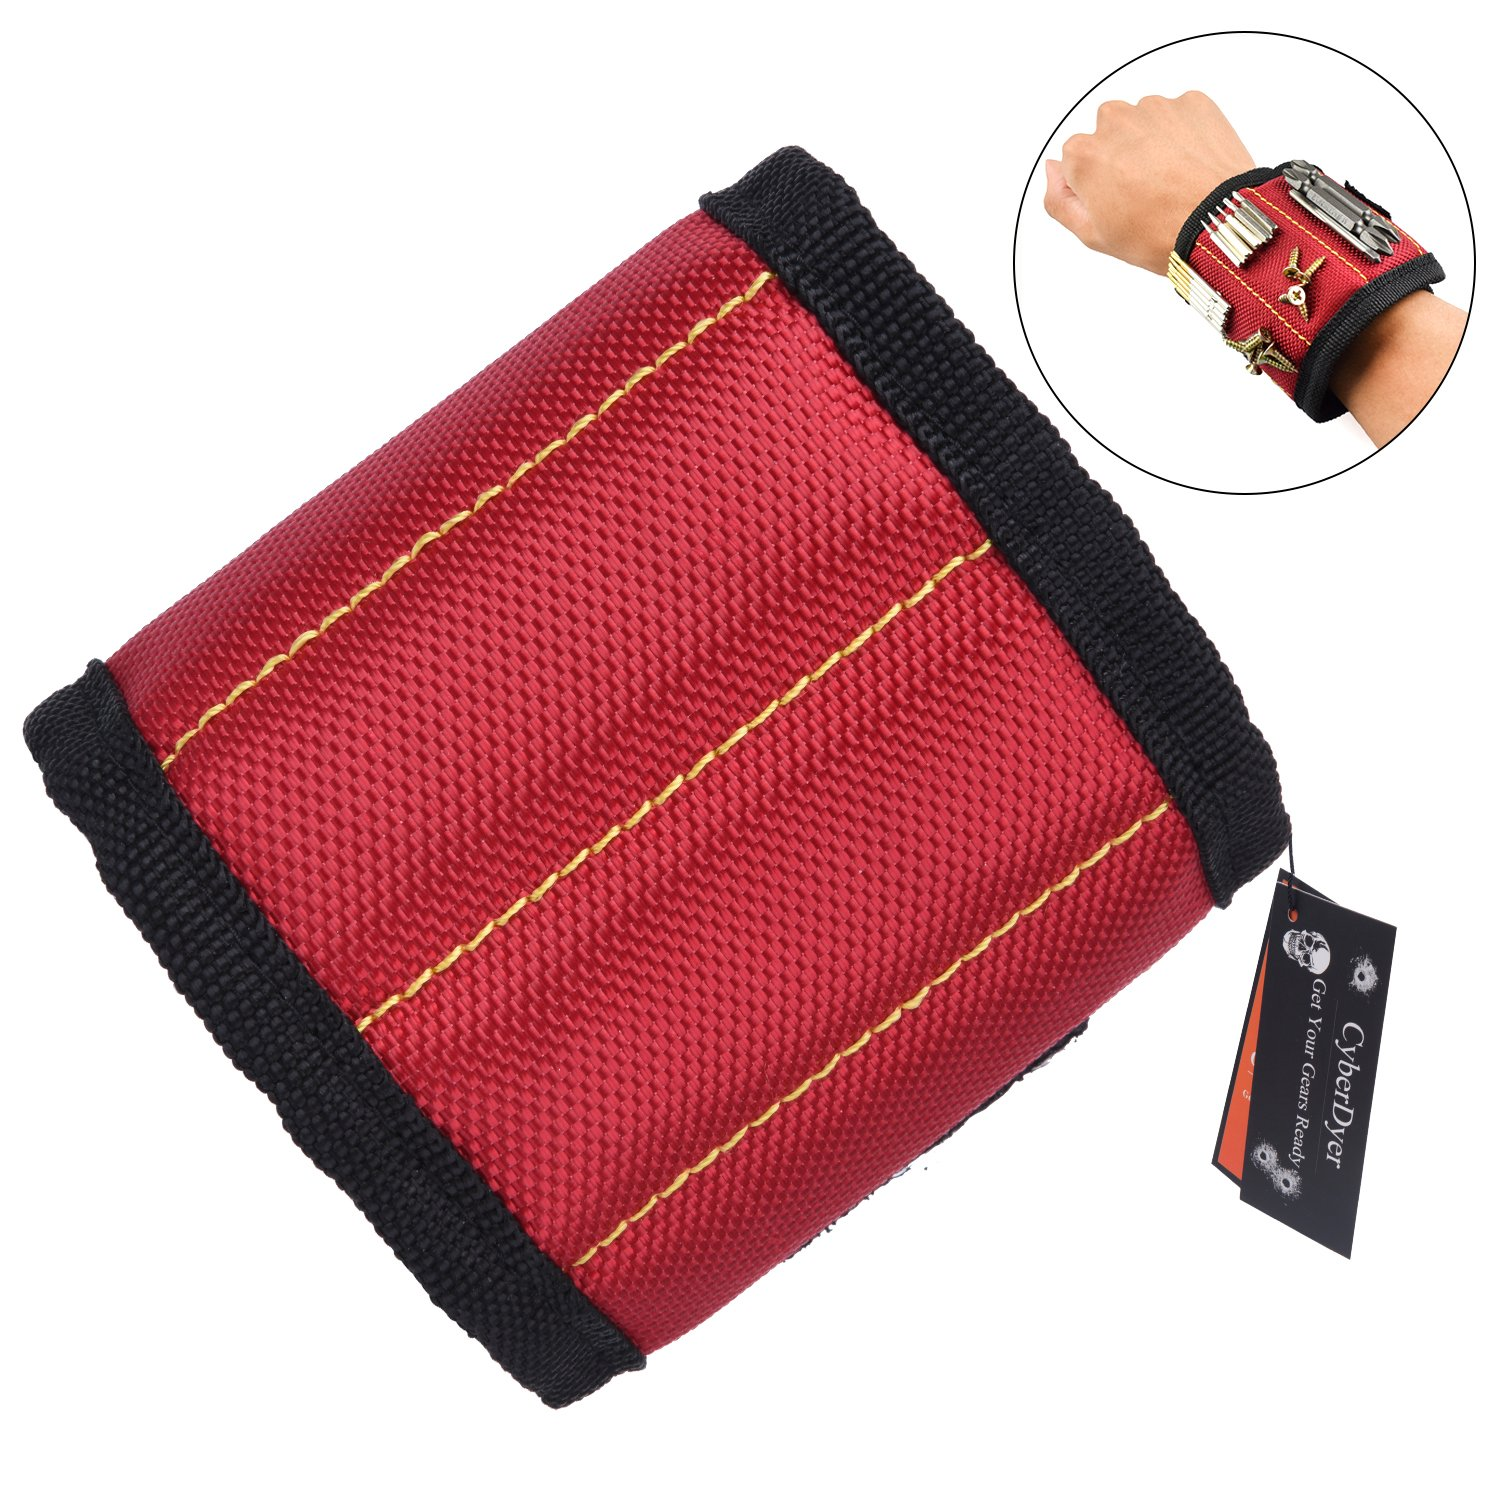 CyberDyer Portable Magnetic Wristband with Strong Magnets for Holding Screws Nails Drill Bits Best Tool Gift for DIY